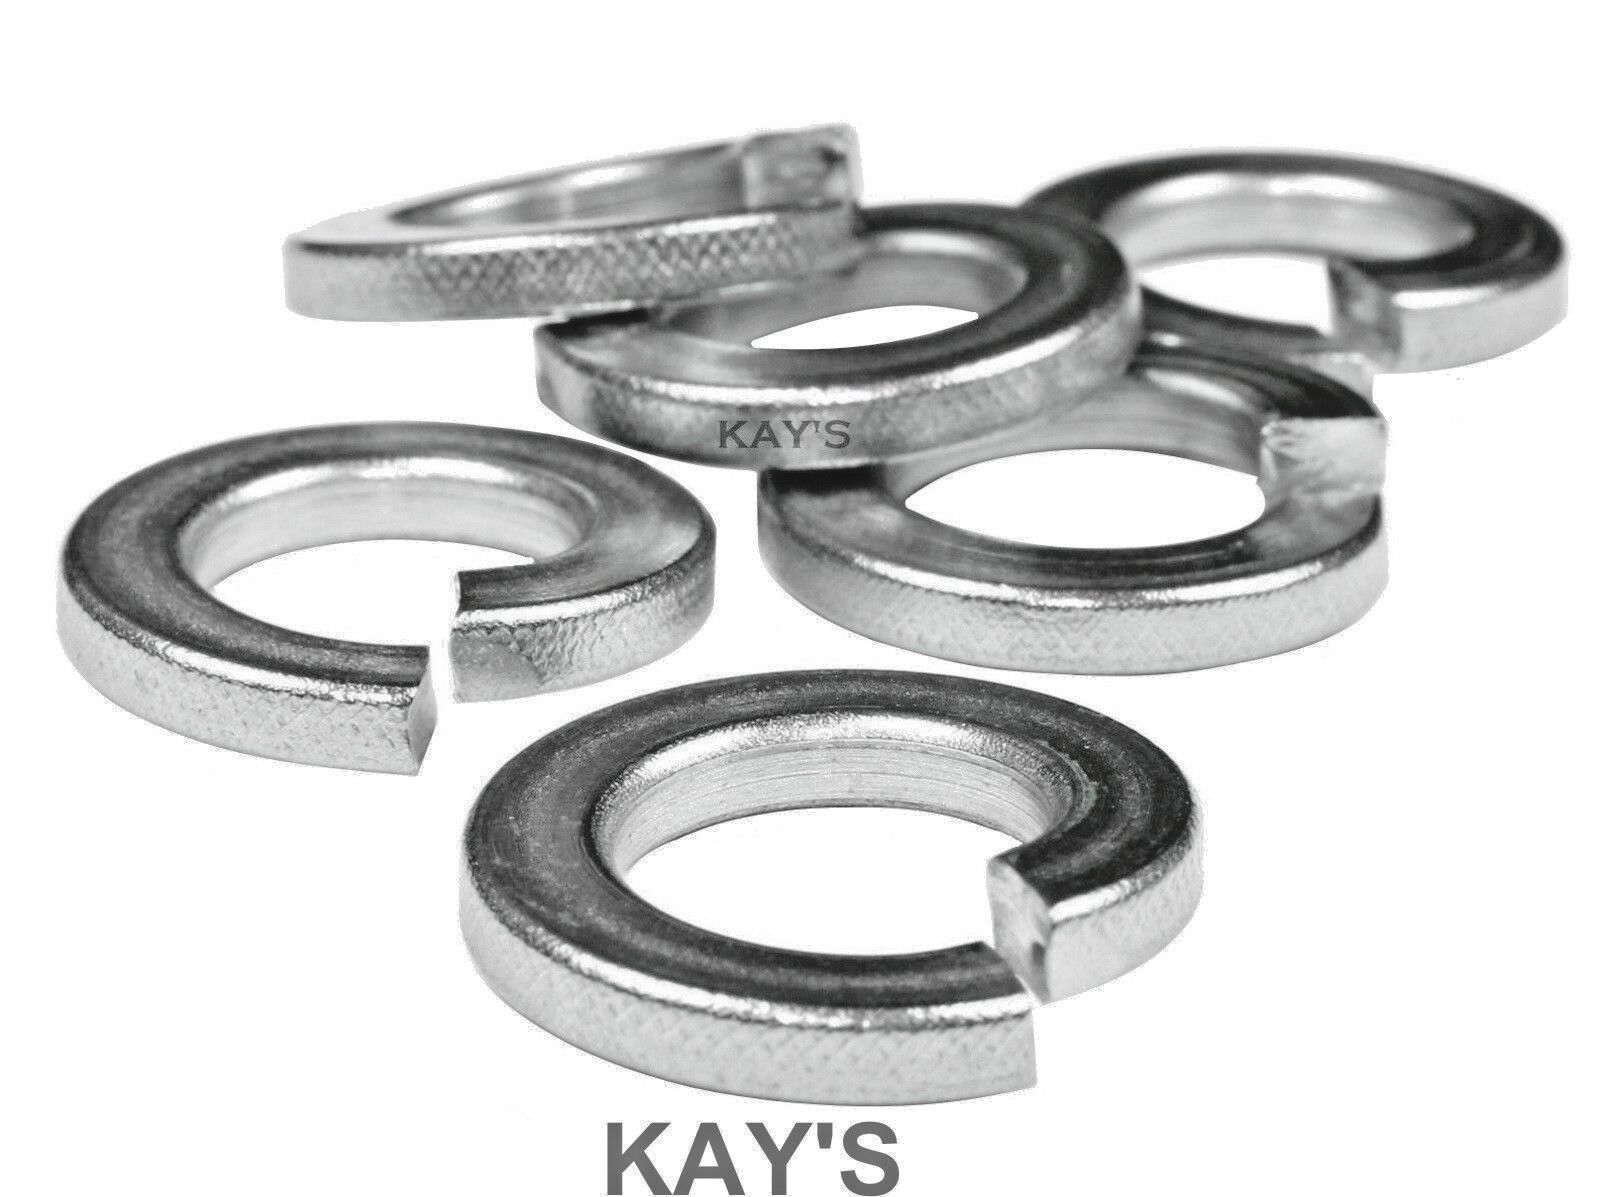 IMPERIAL SPRING WASHERS UNC UNF 3/16,1/4,5/16,3/8,7/16,1/2,5/8,3/4